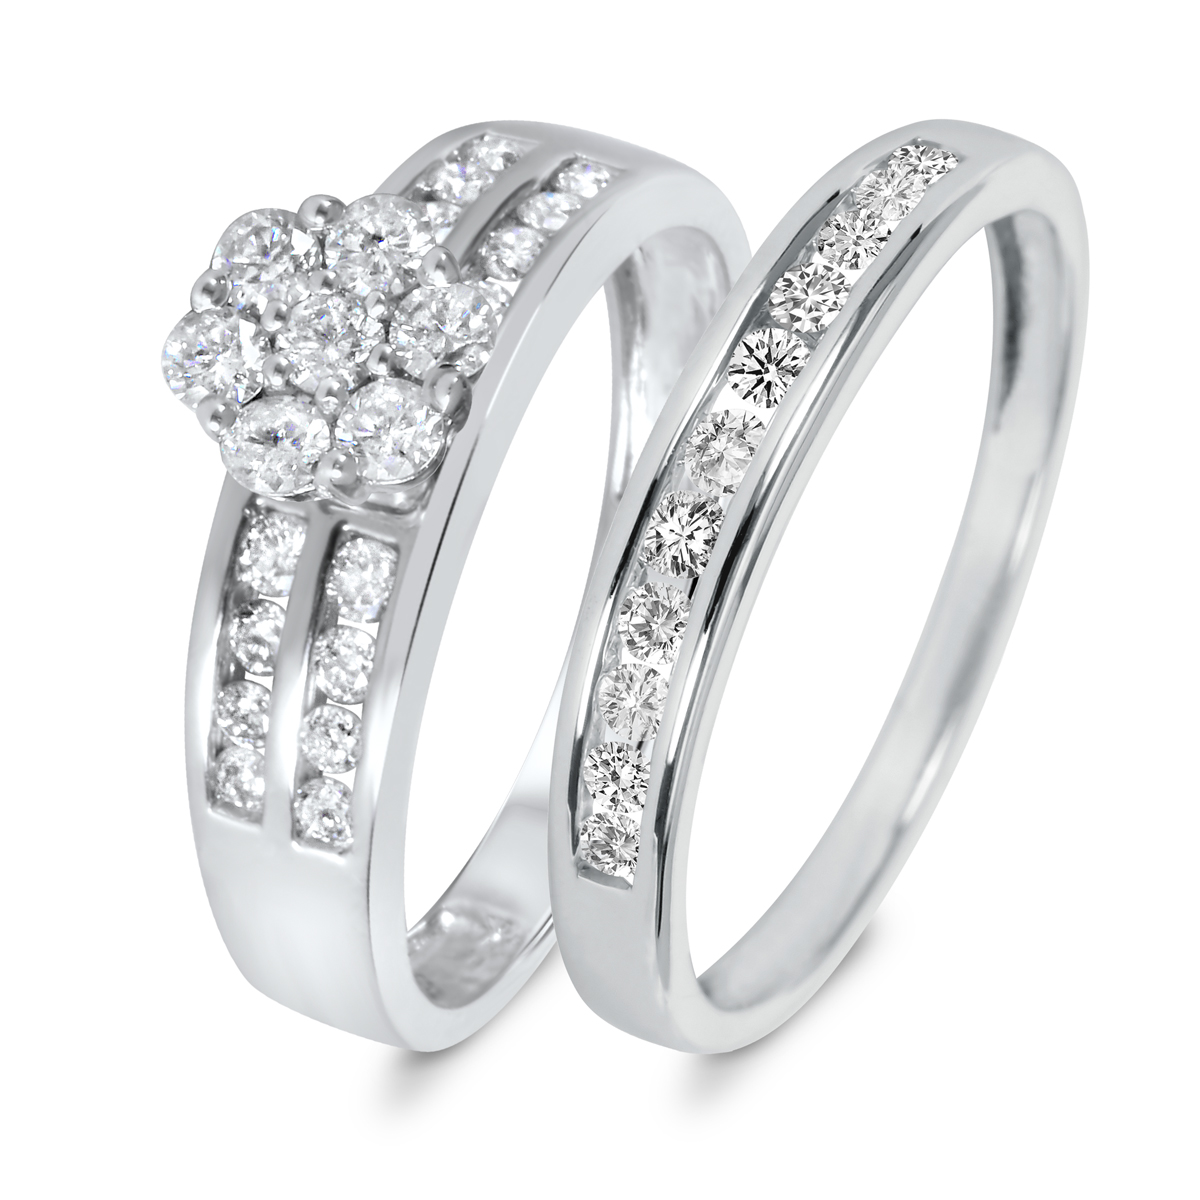 78 CT TW Diamond Womens Bridal Wedding Ring Set 10K White Gold